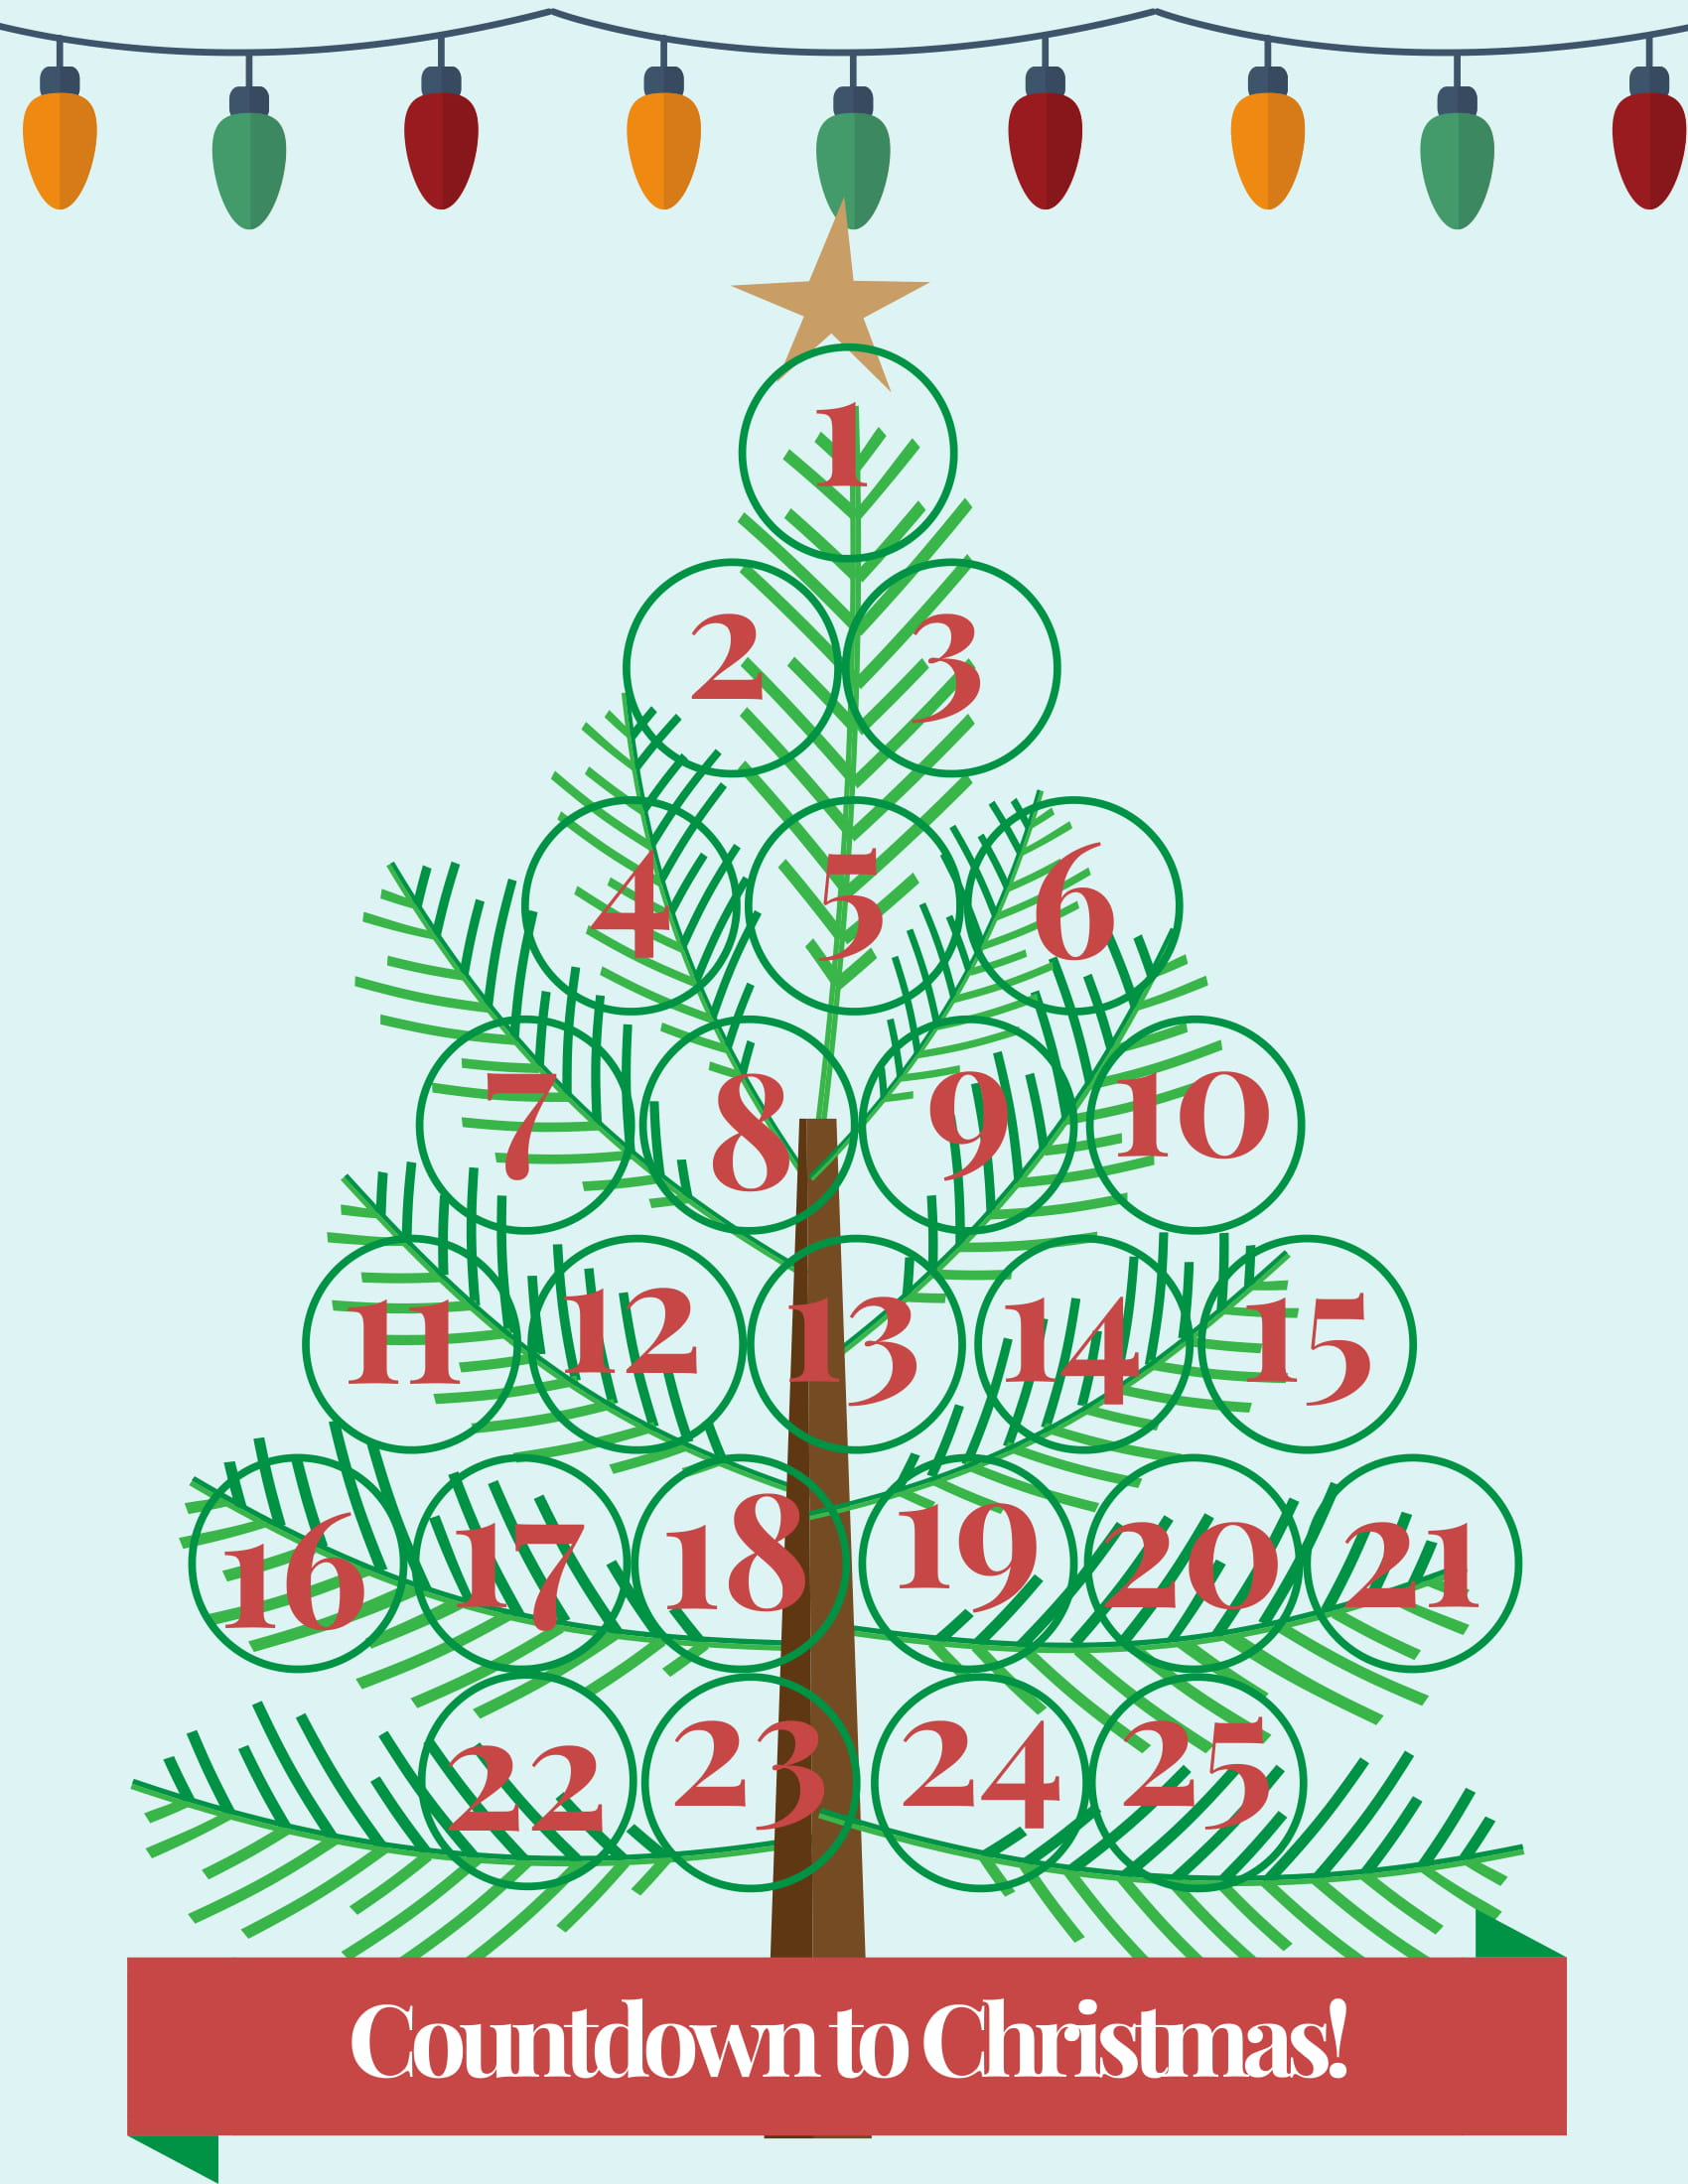 graphic regarding Printable Christmas Calendar called Countdown towards Xmas Absolutely free Printable -- Xmas Tree